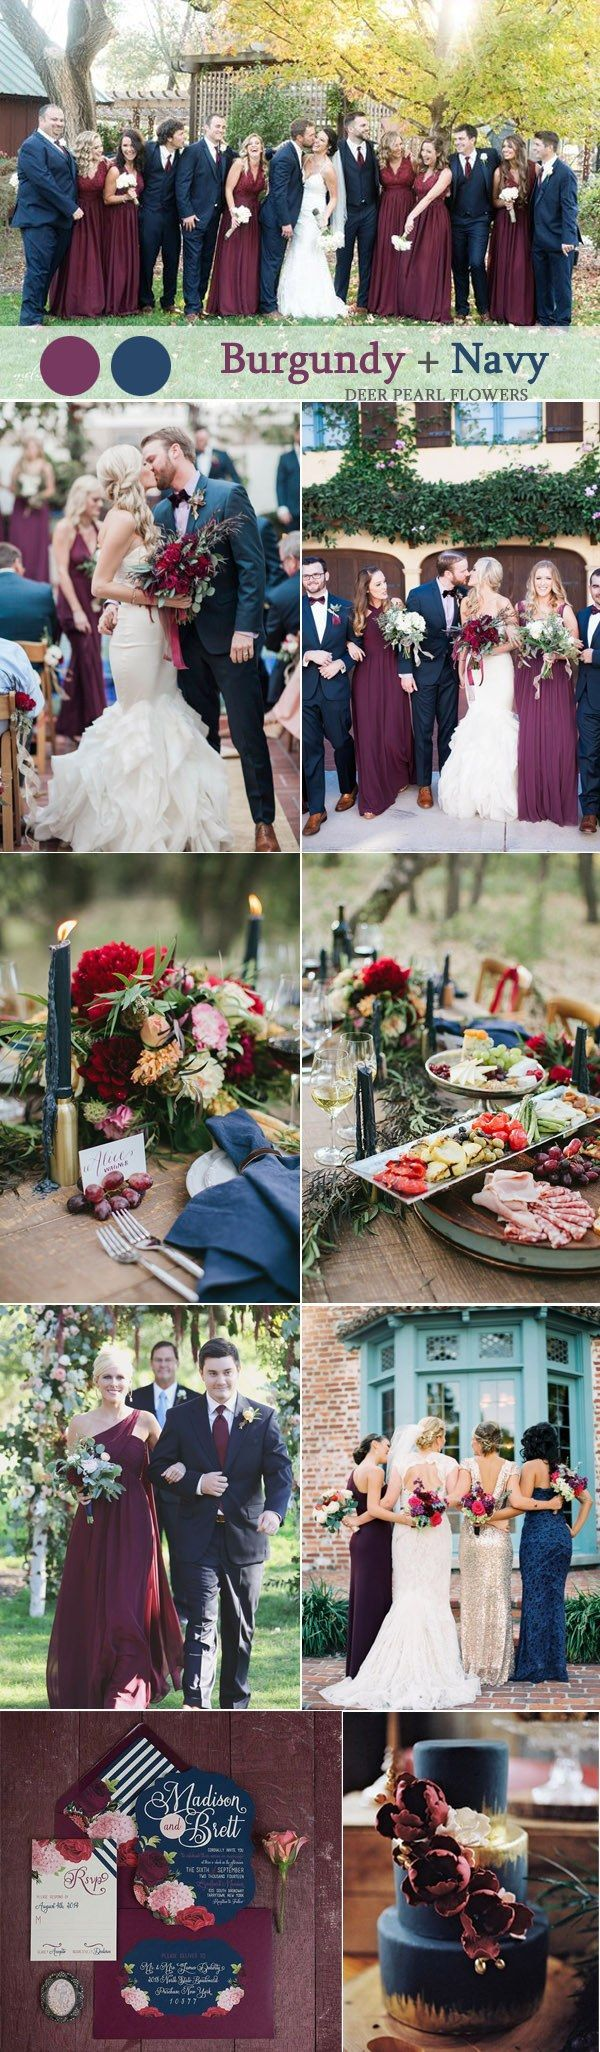 Burgundy and gold fall wedding color ideas / http://www.deerpearlflowers.com/burgundy-and-navy-wedding-color-ideas/